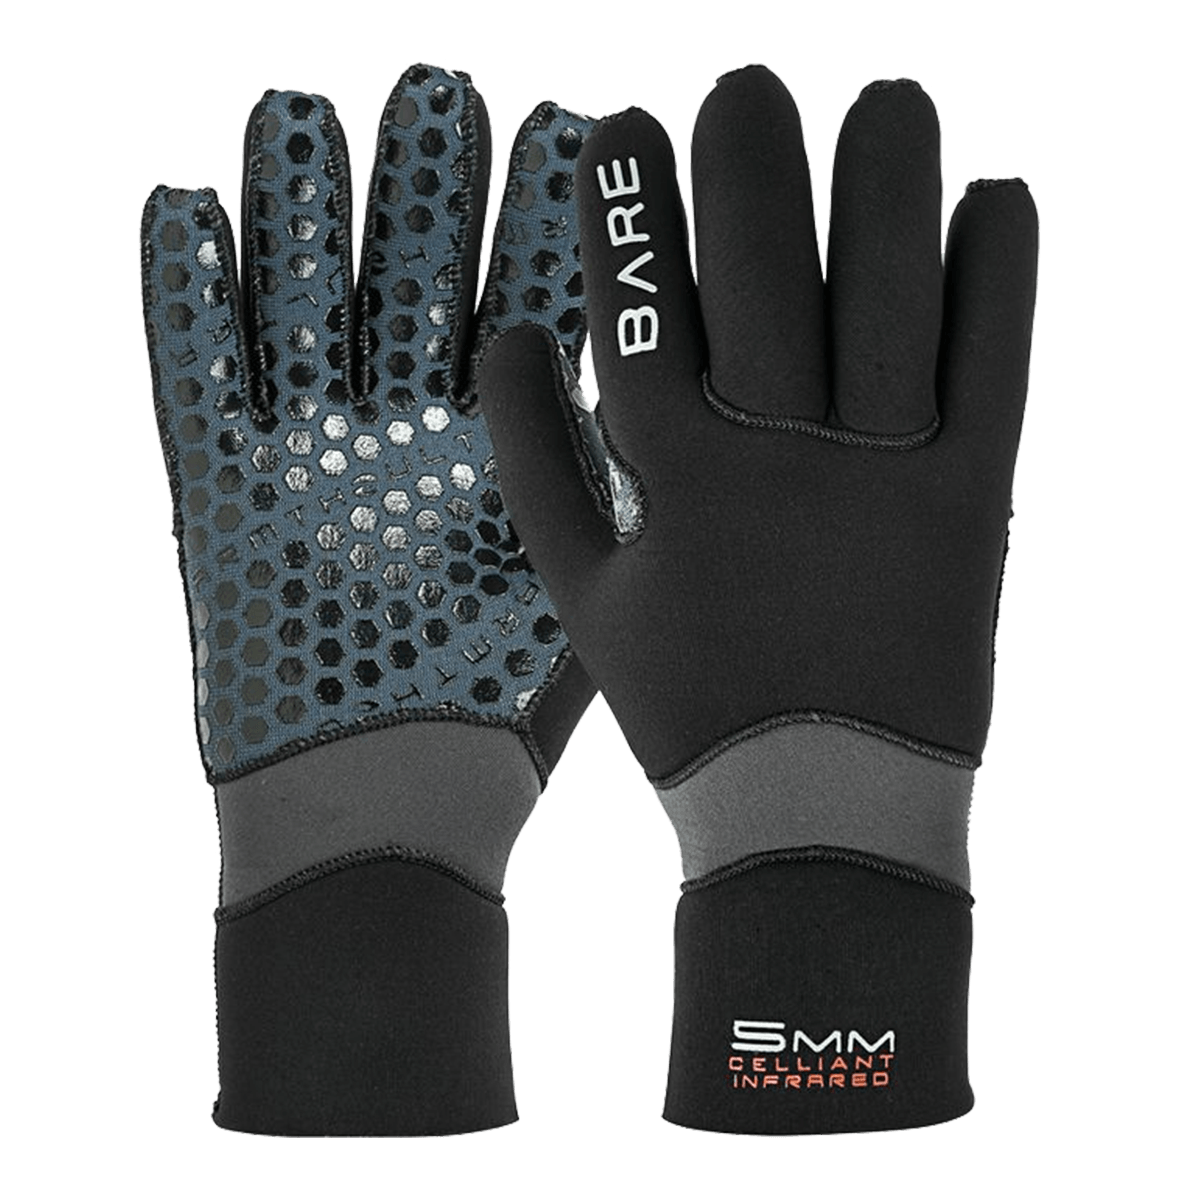 Bare 5mm Glove Extra Small